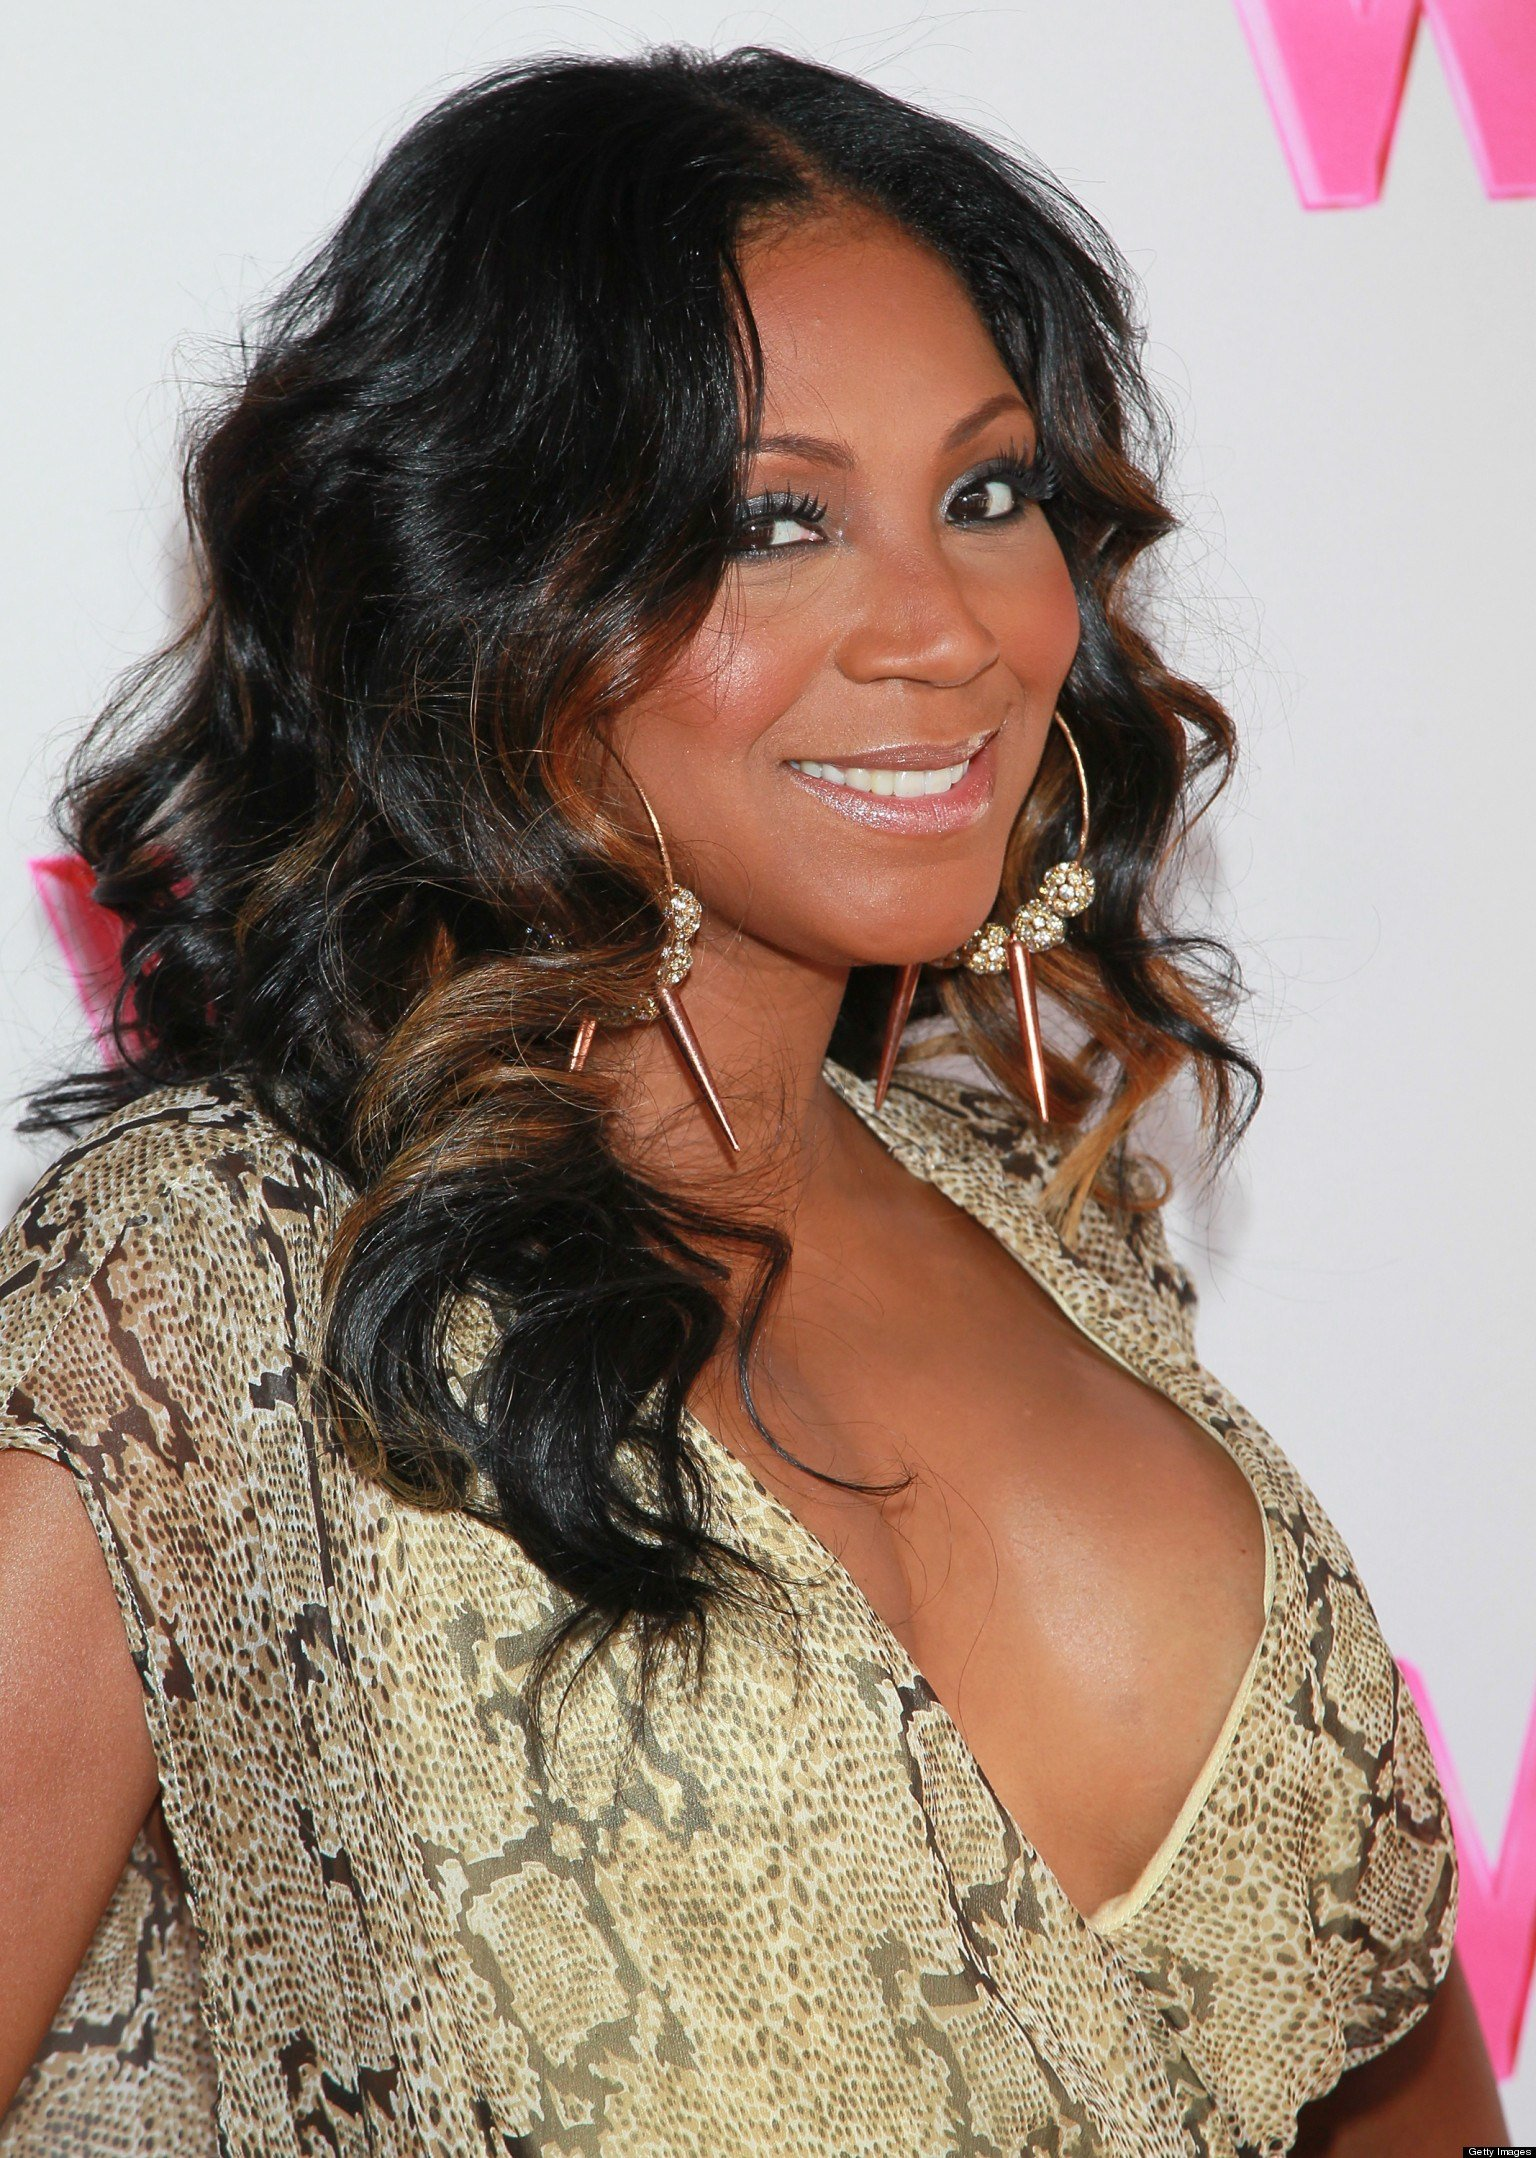 The Best Trina Braxton Divorce Toni Braxton S Sister Splits From Pictures